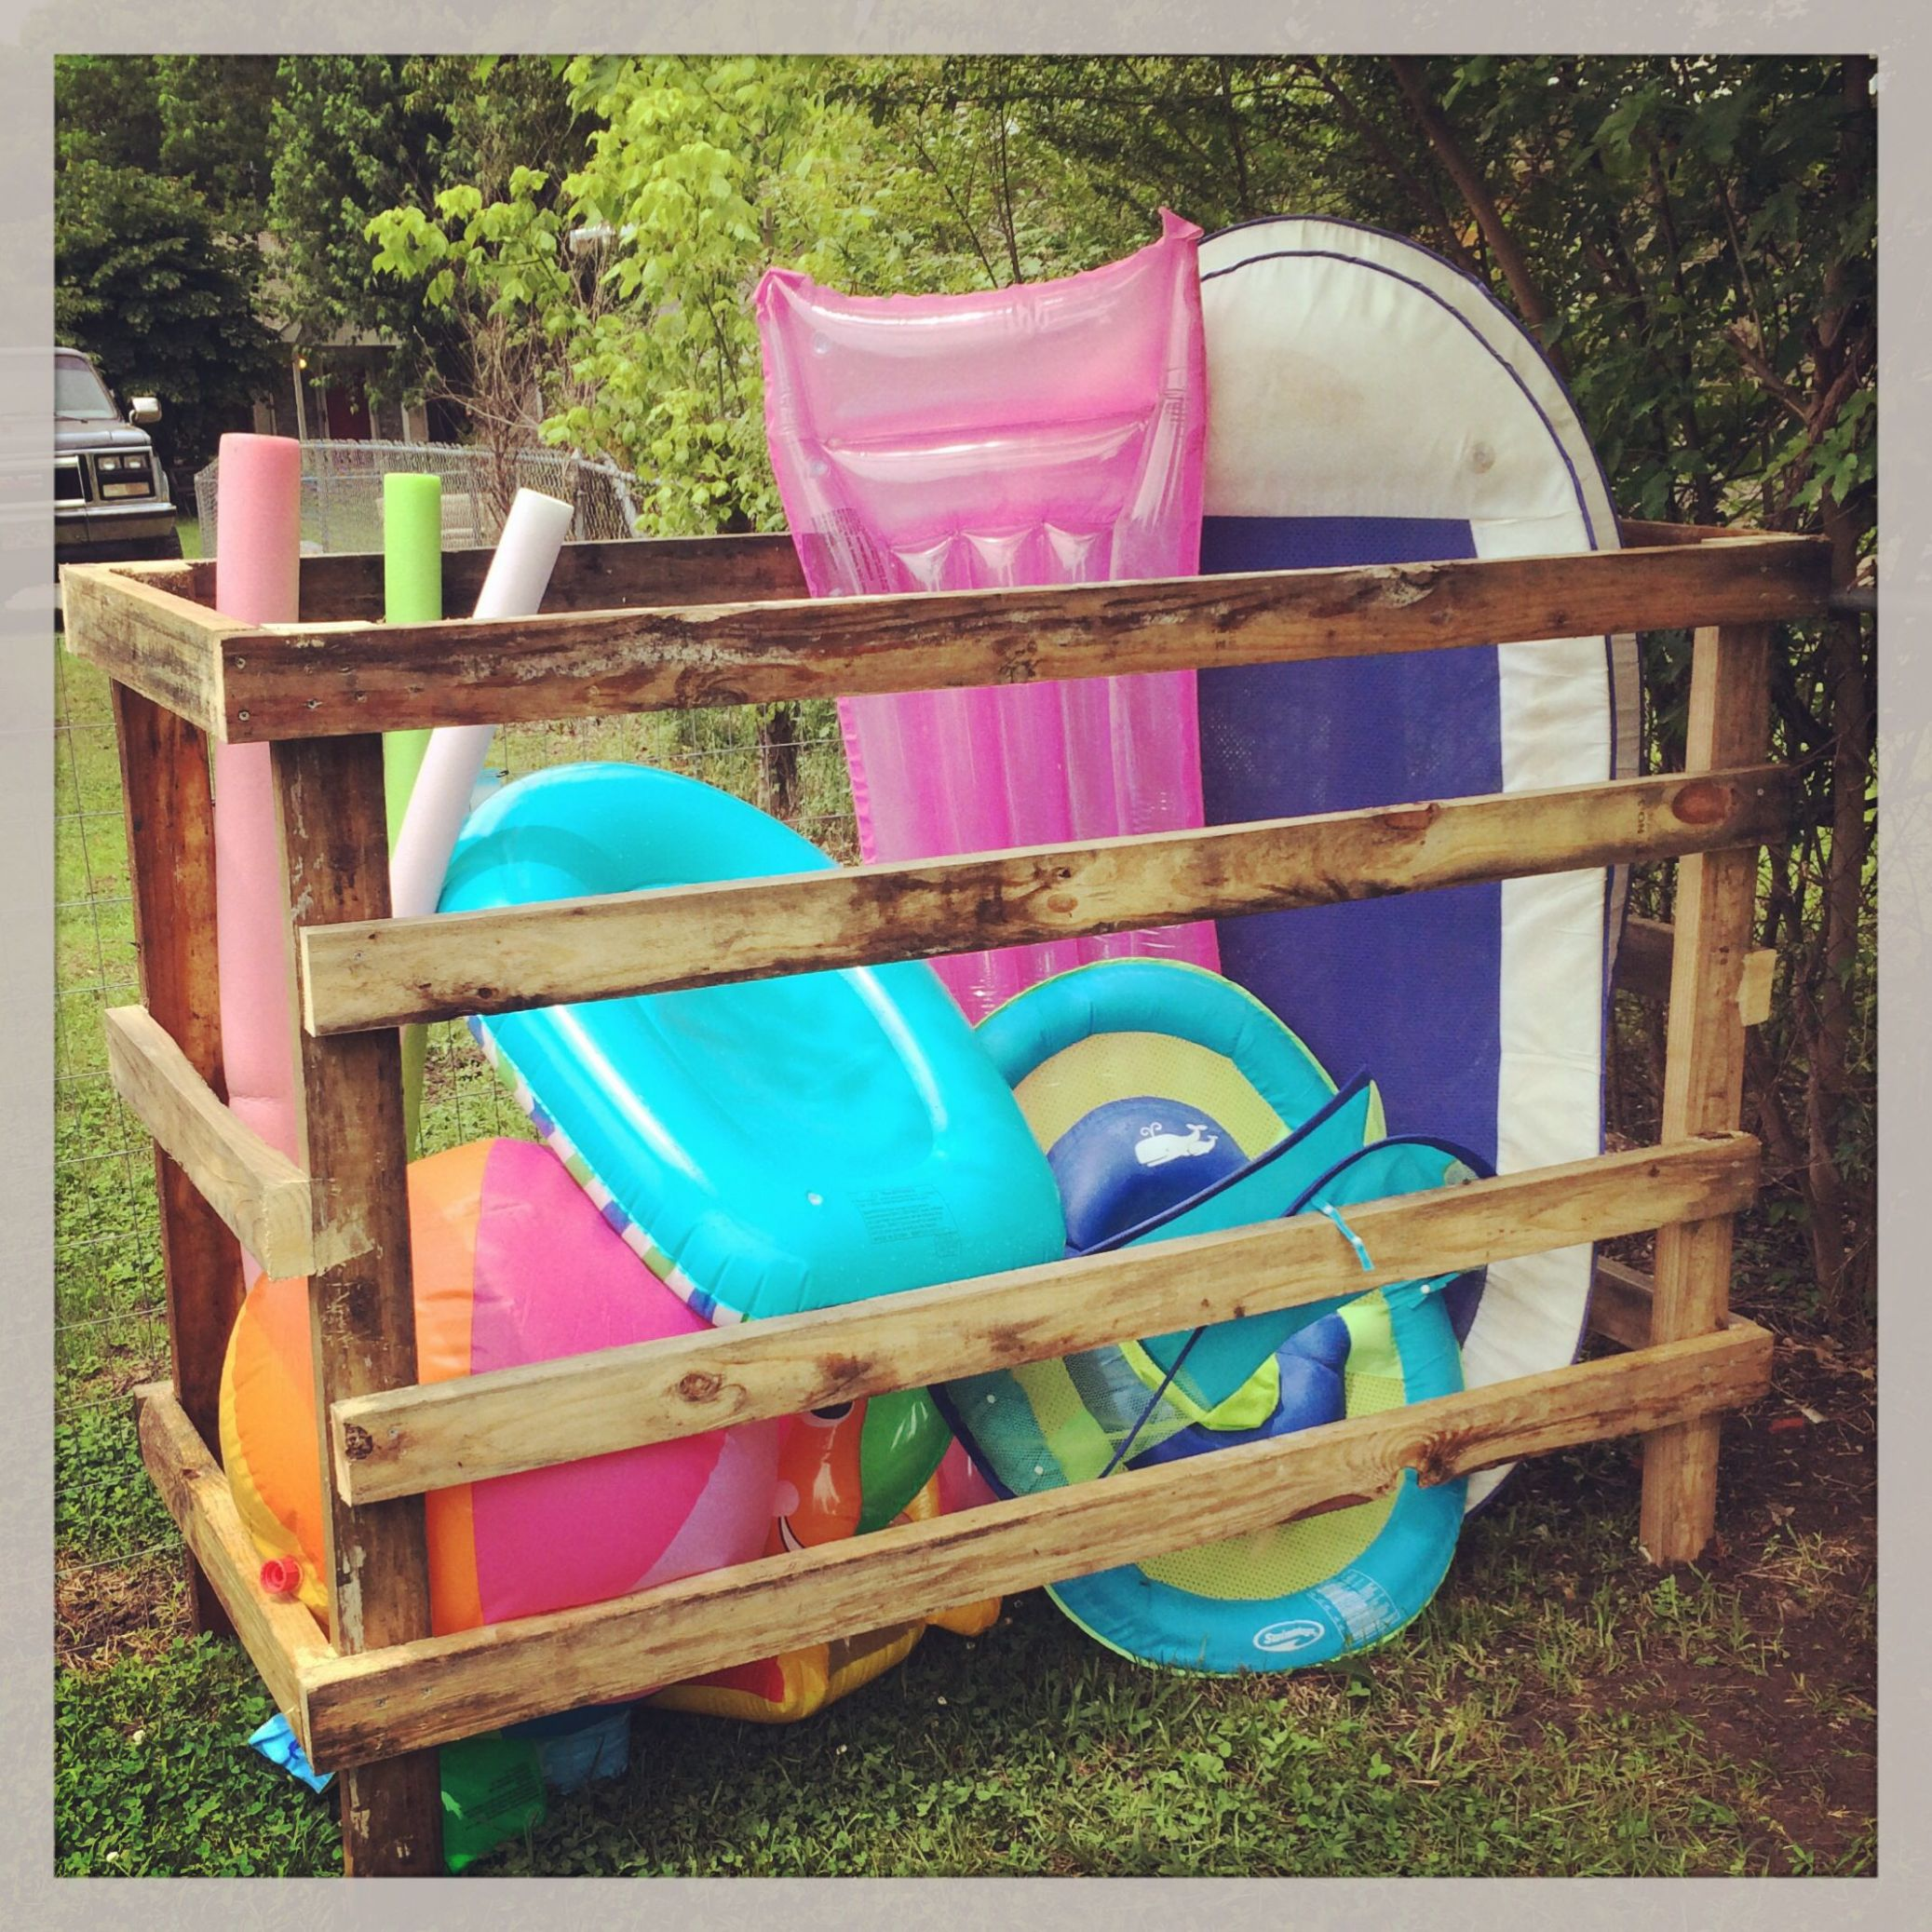 Pool float holder | Pallet pool, Pool storage, Pool float storage